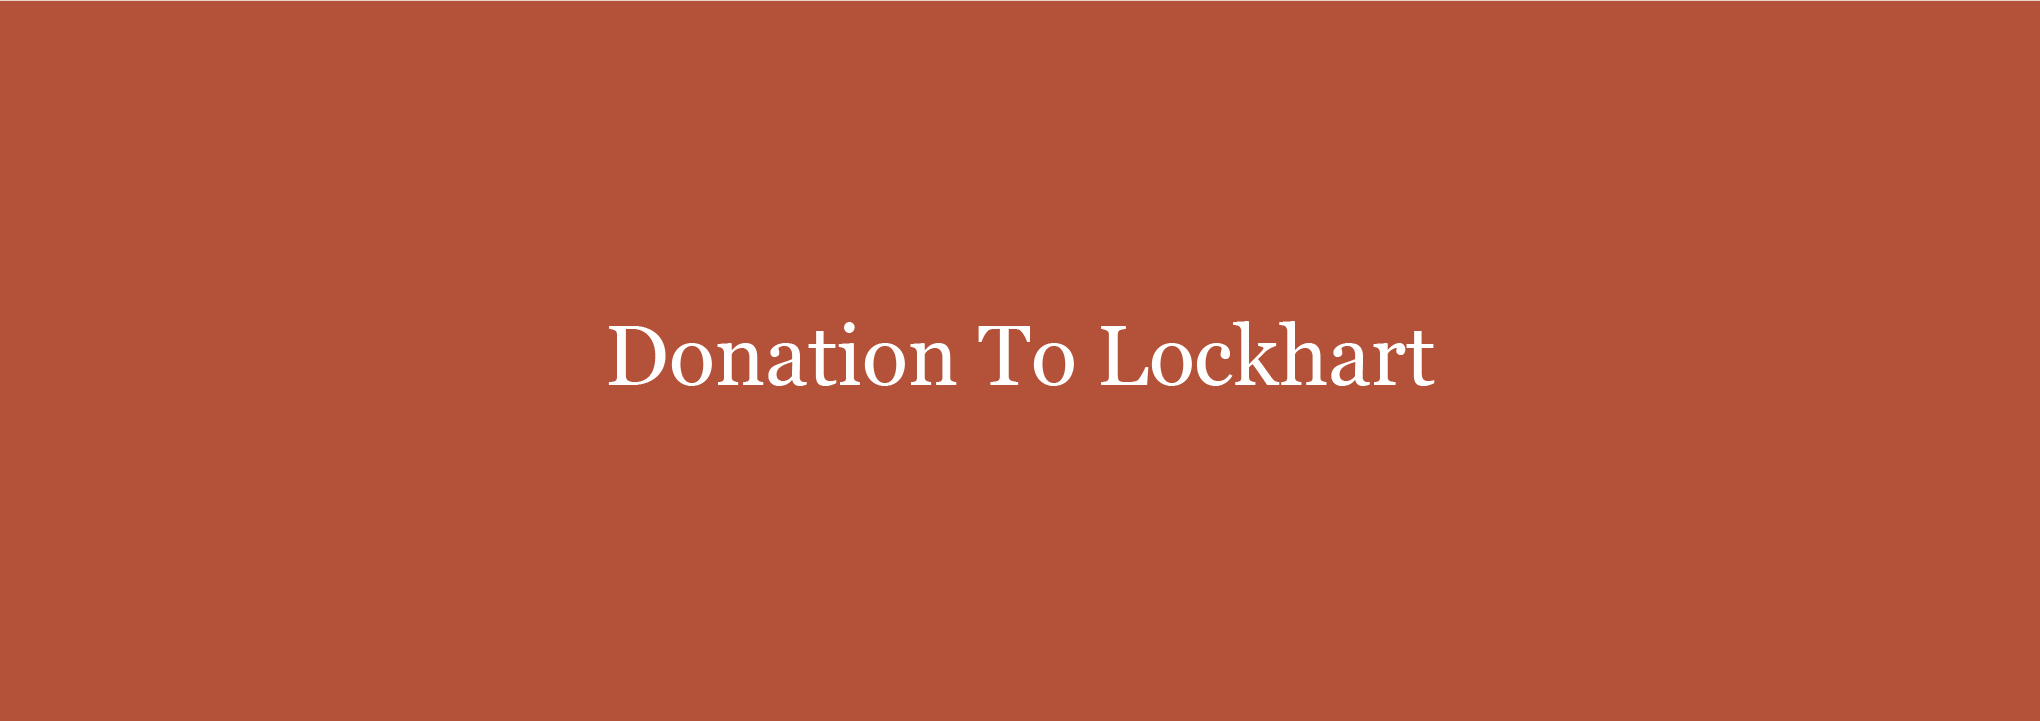 Donations To Lockhart